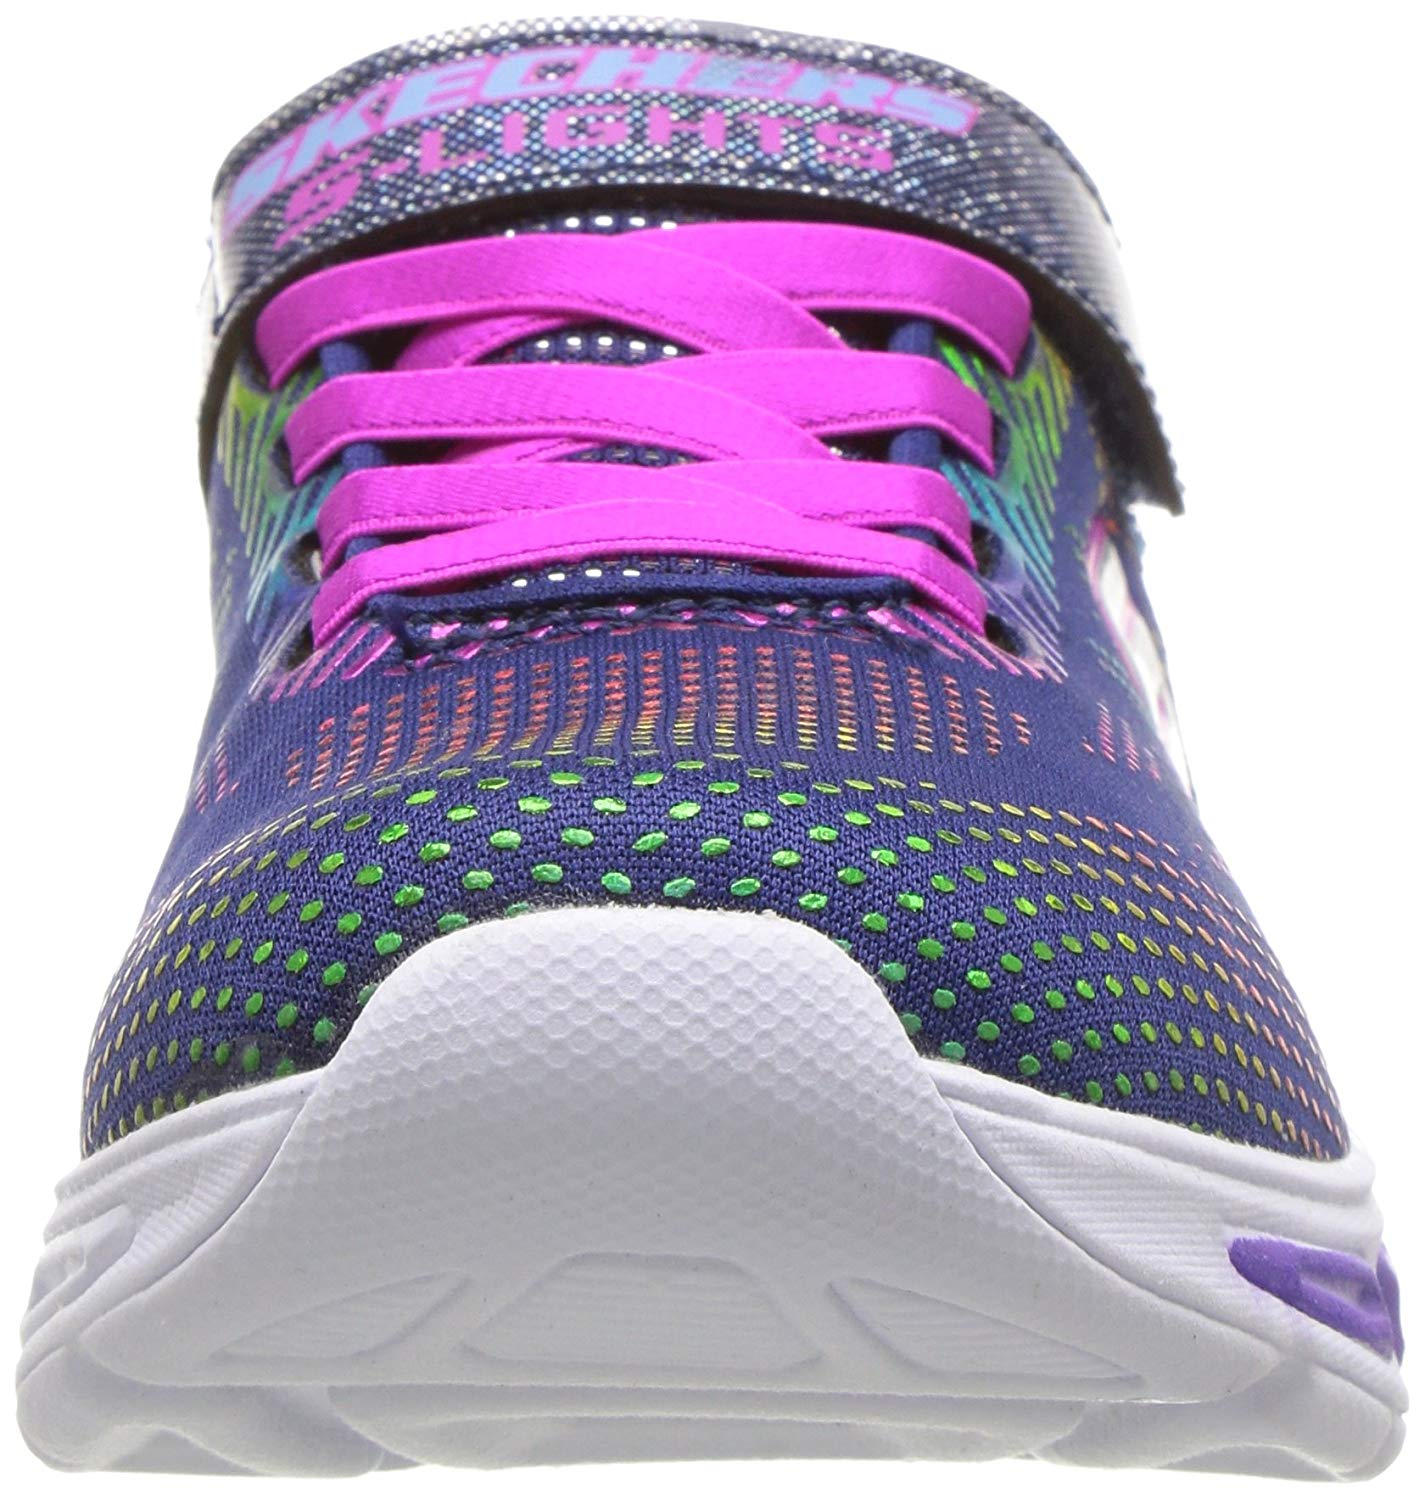 Skechers Kids Girls Navy Gleam N Dream Light Up Trainers